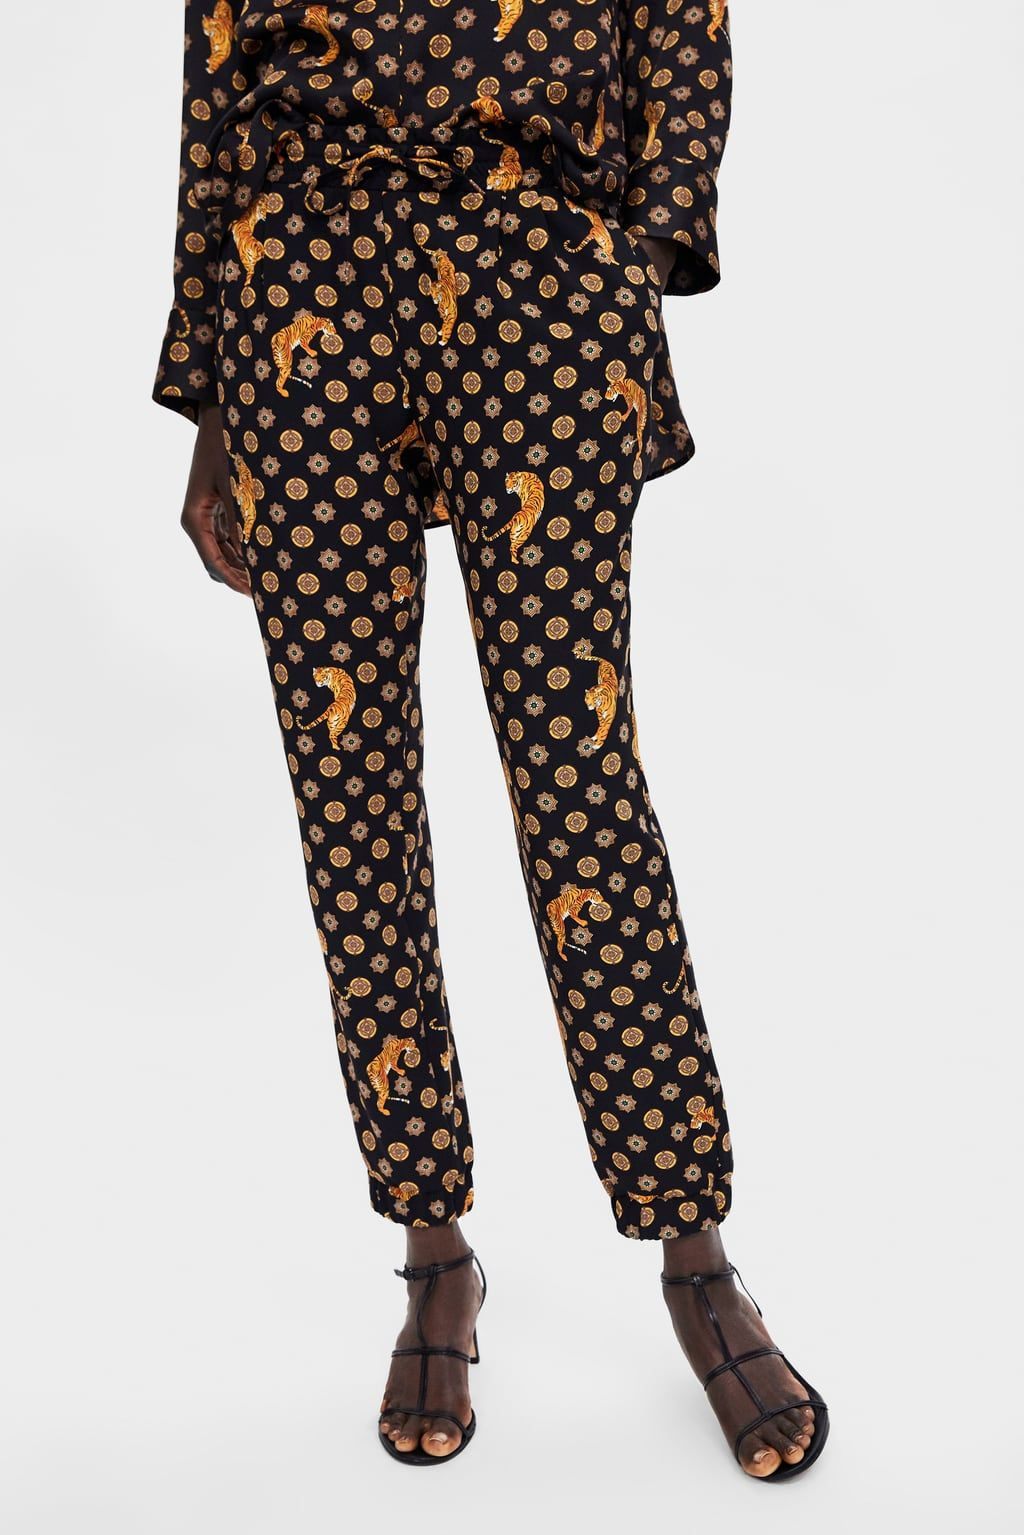 ba2e4cc9 Image 2 of TIGER PRINTED PANTS from Zara | things i want but am too ...